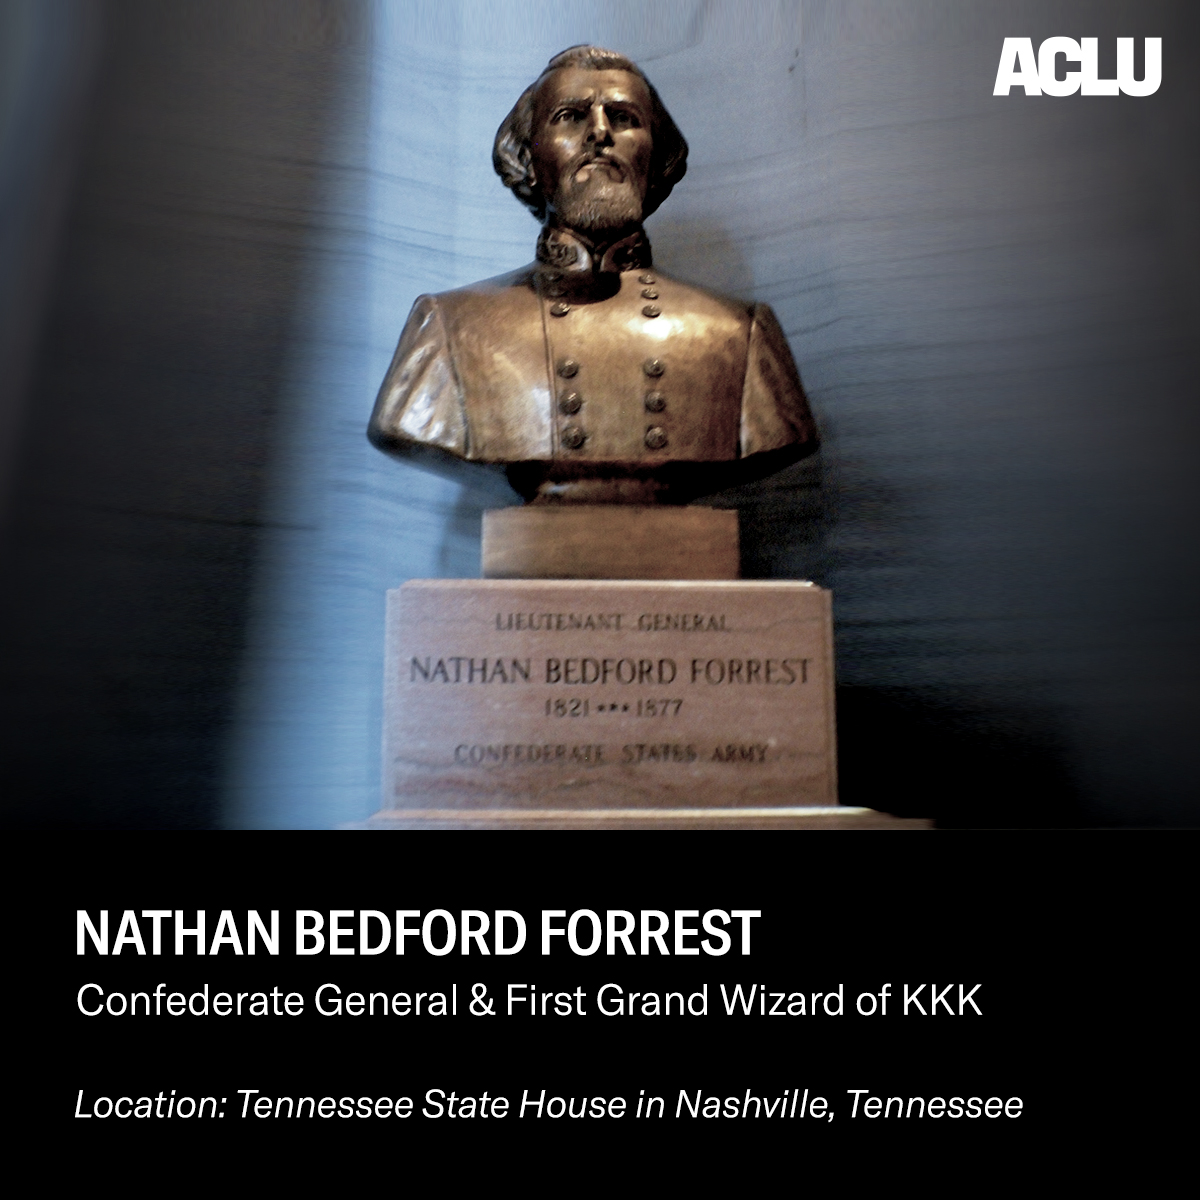 Nathaniel Bedford Forrest was a confederate general and KKK leader responsible for The Fort Pillow Massacre, one of the worst atrocities of the Civil War.  A statue memorializing him still remains in the Tennessee State House today.